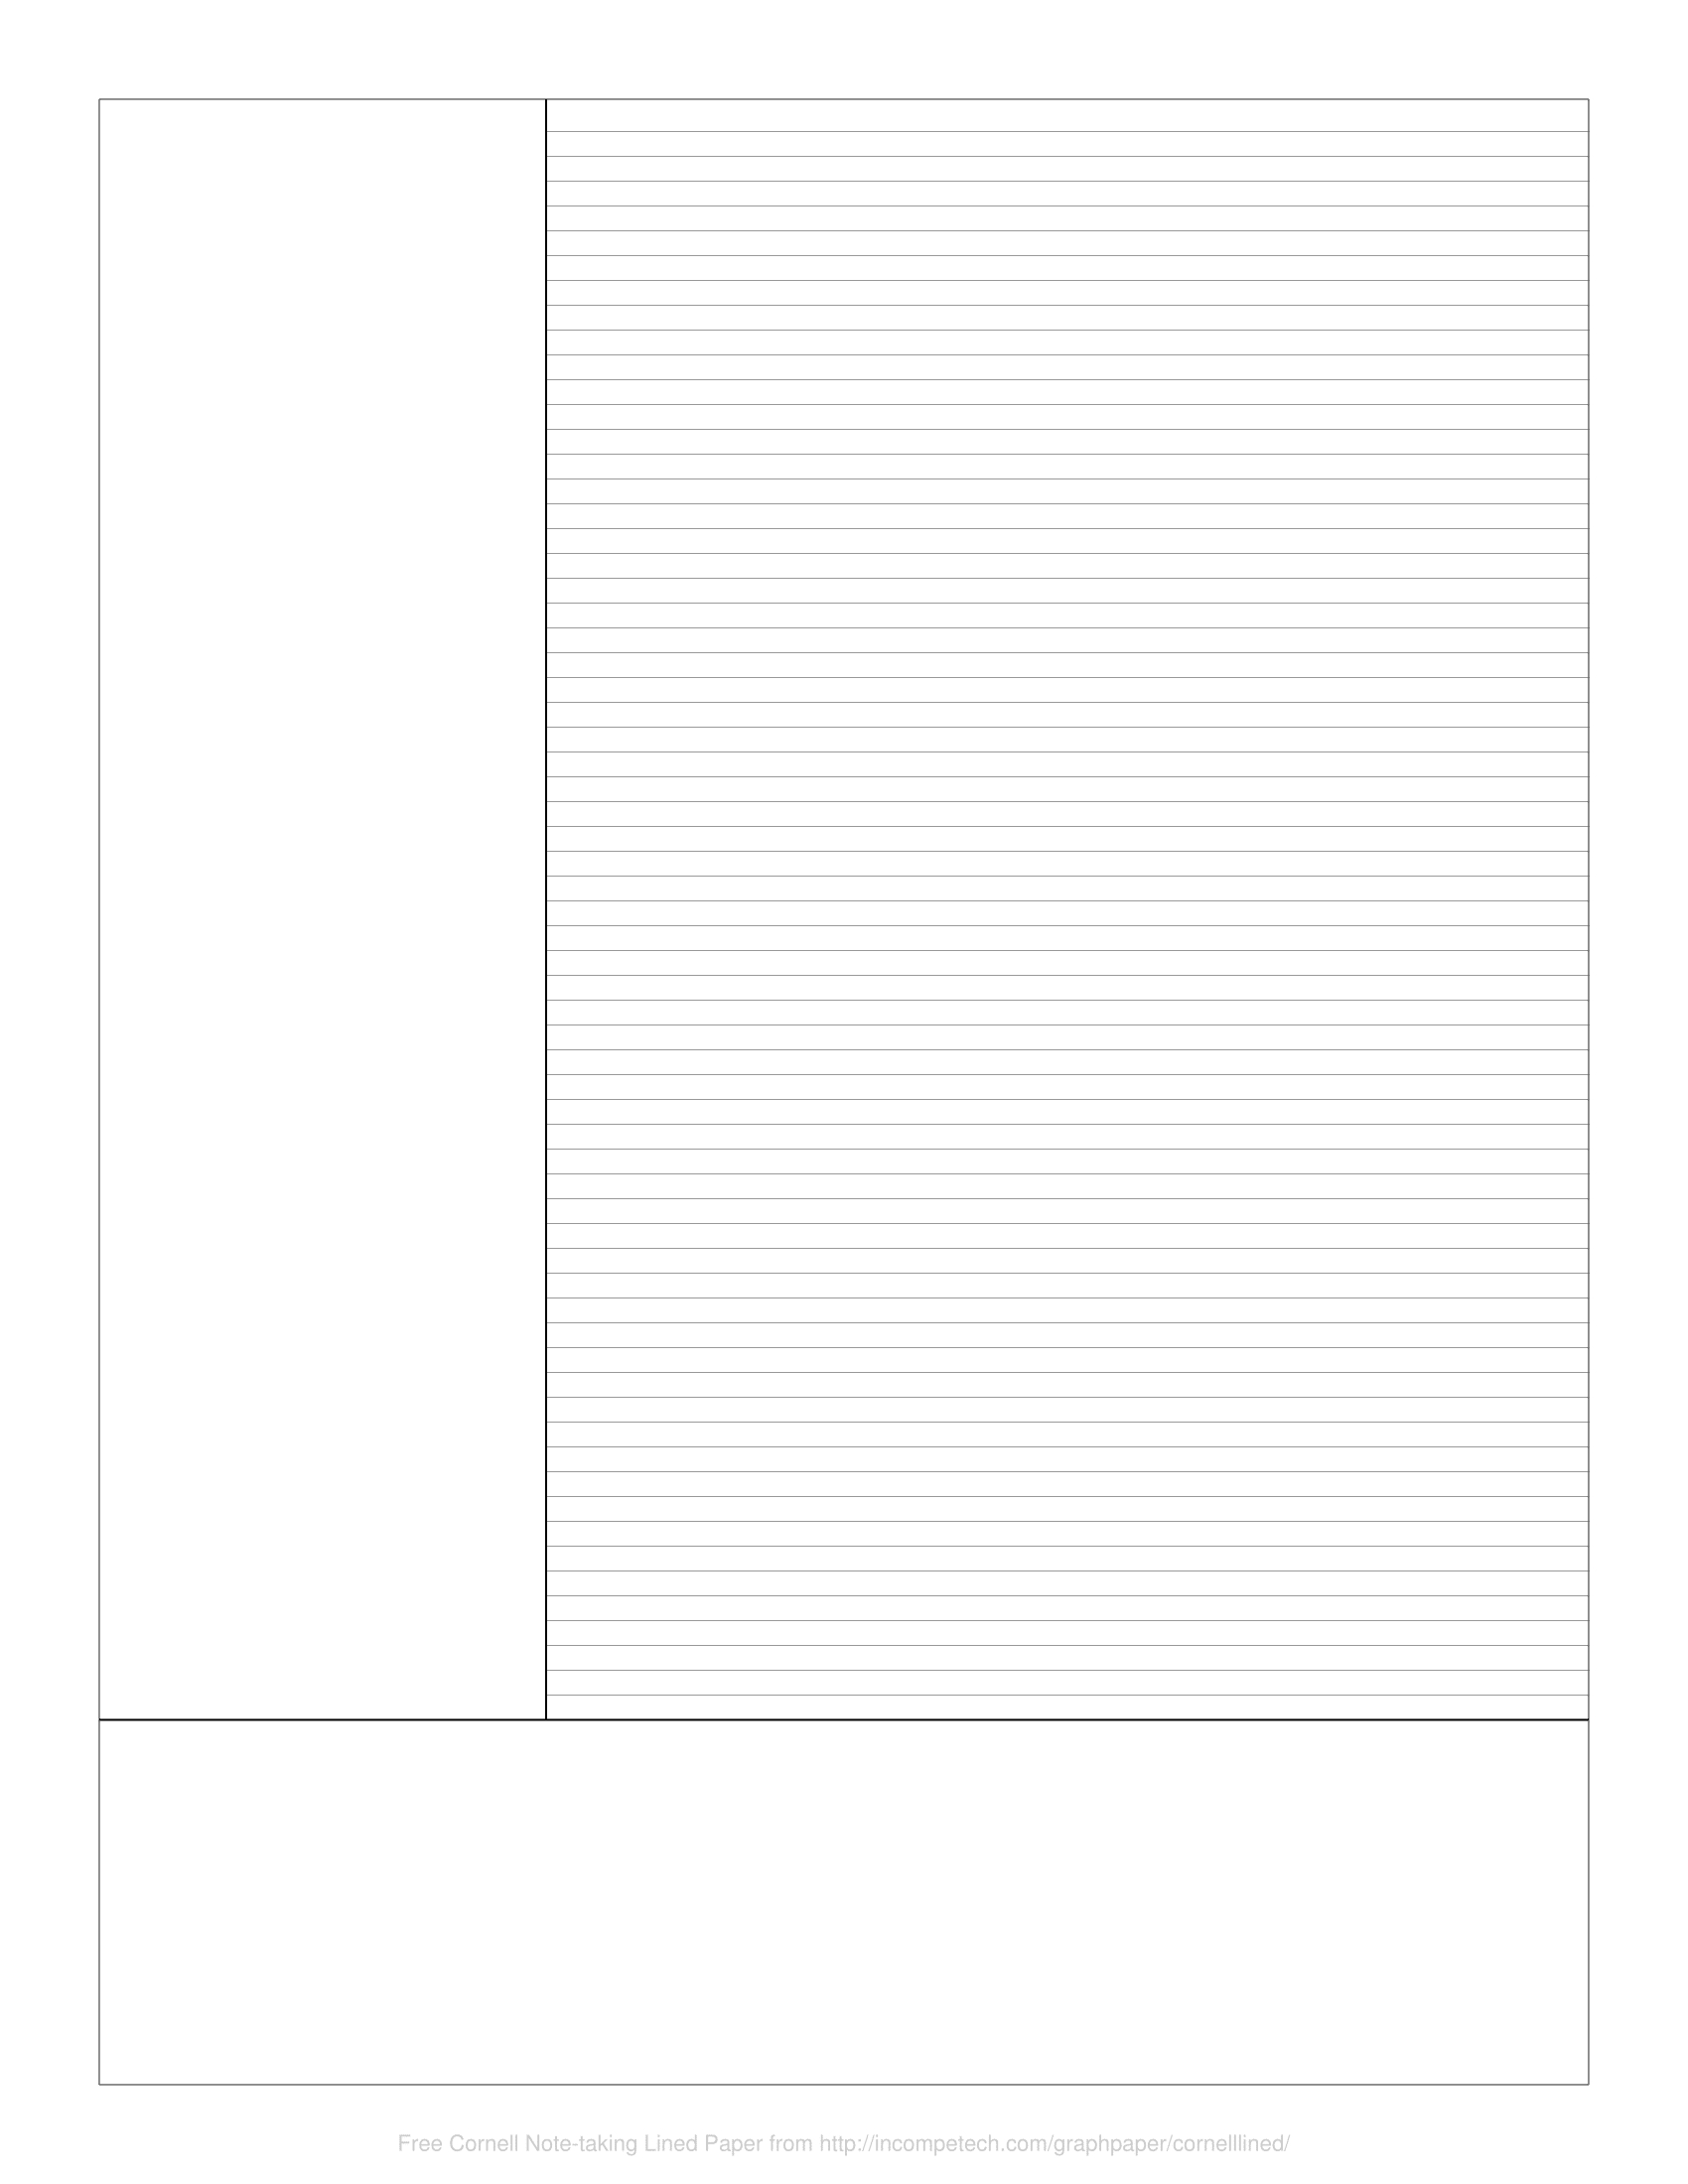 Cornell Notes Paper - Colona.rsd7 Inside Cornell Notes Template Google Docs